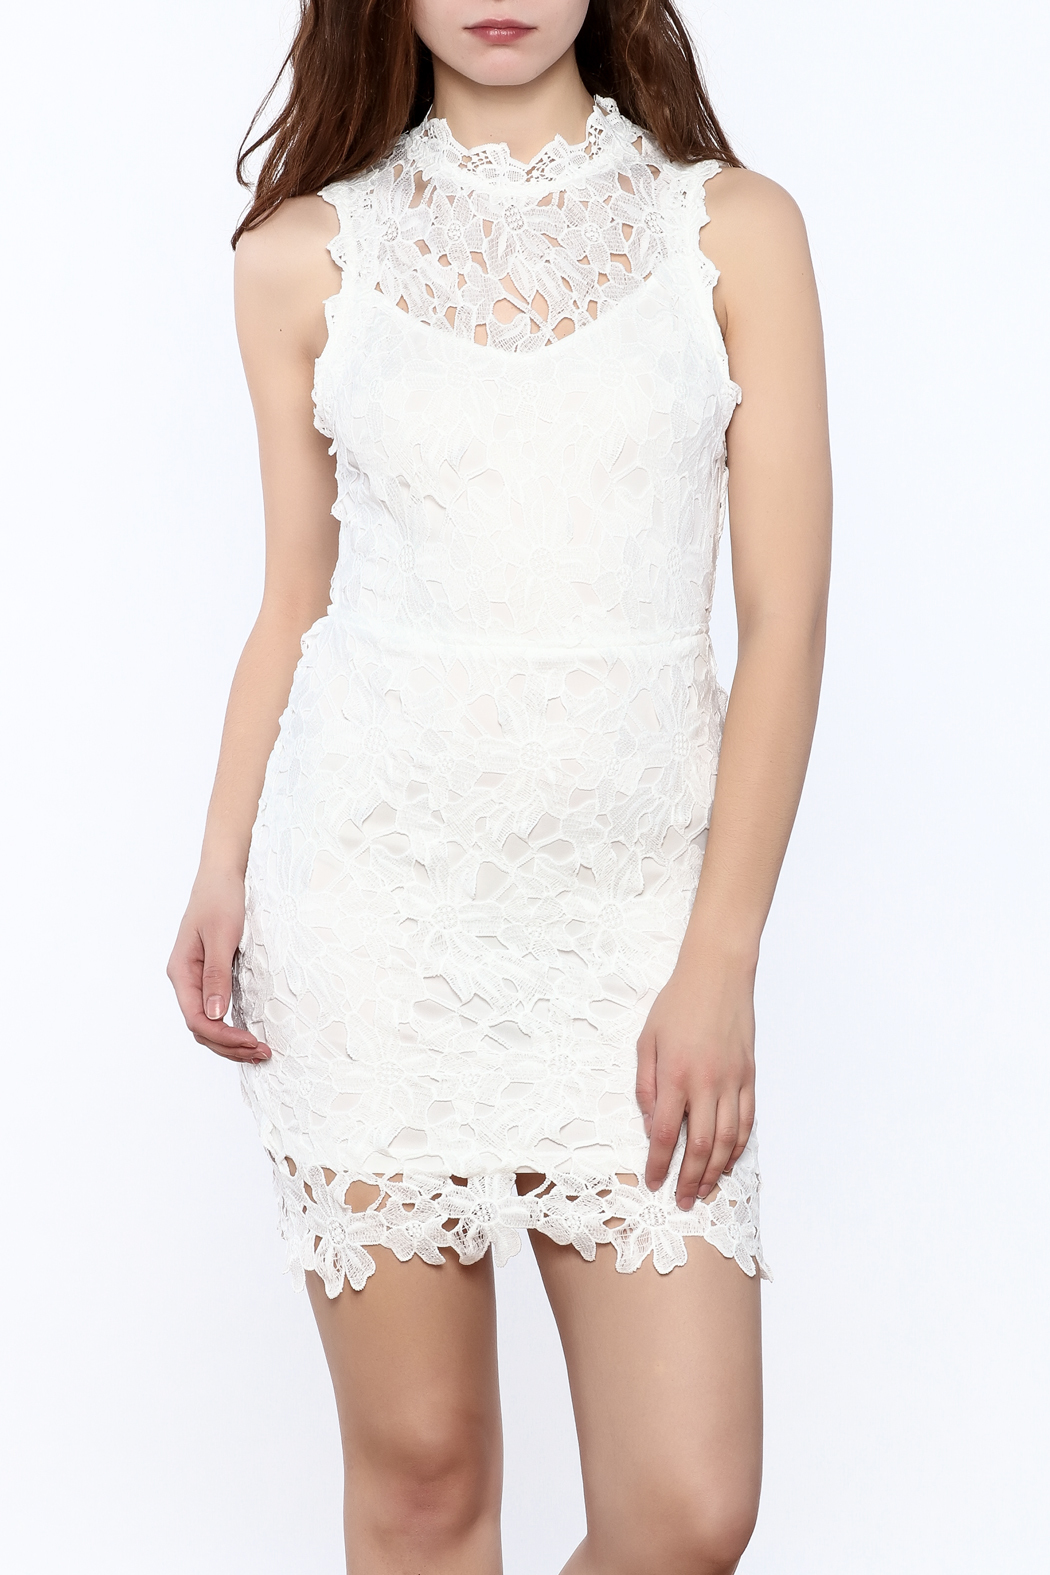 Lace dress boutique 77